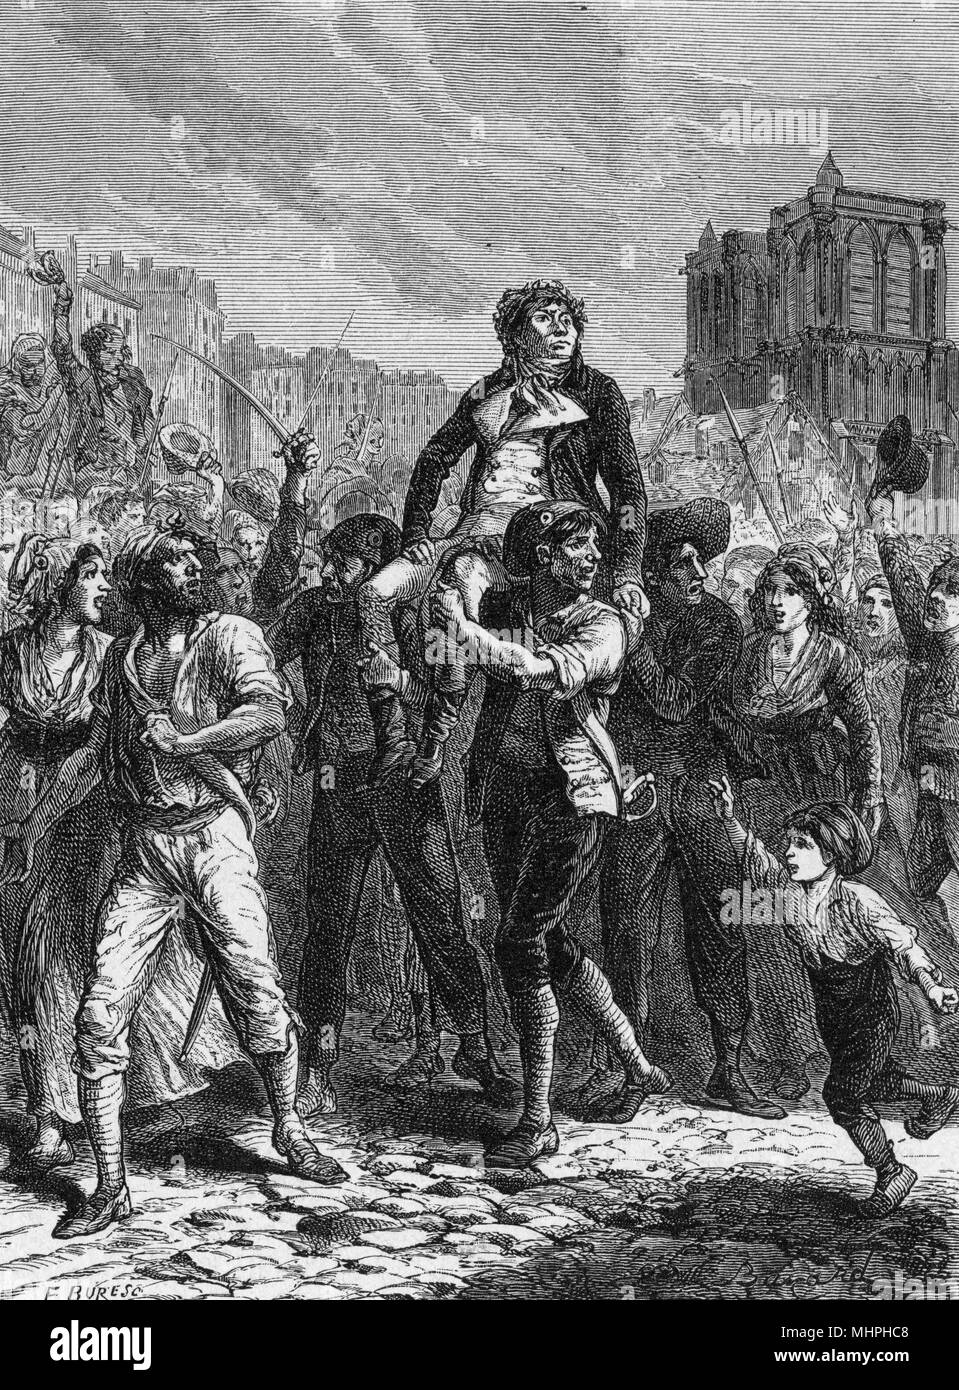 The triumph of Marat - he is  borne aloft by enthusiastic  fellow-revolutionaries.  But  pride cometh before a fall -  he will soon be murdered by  Charlotte Corday...     Date: 29 April 1793 - Stock Image